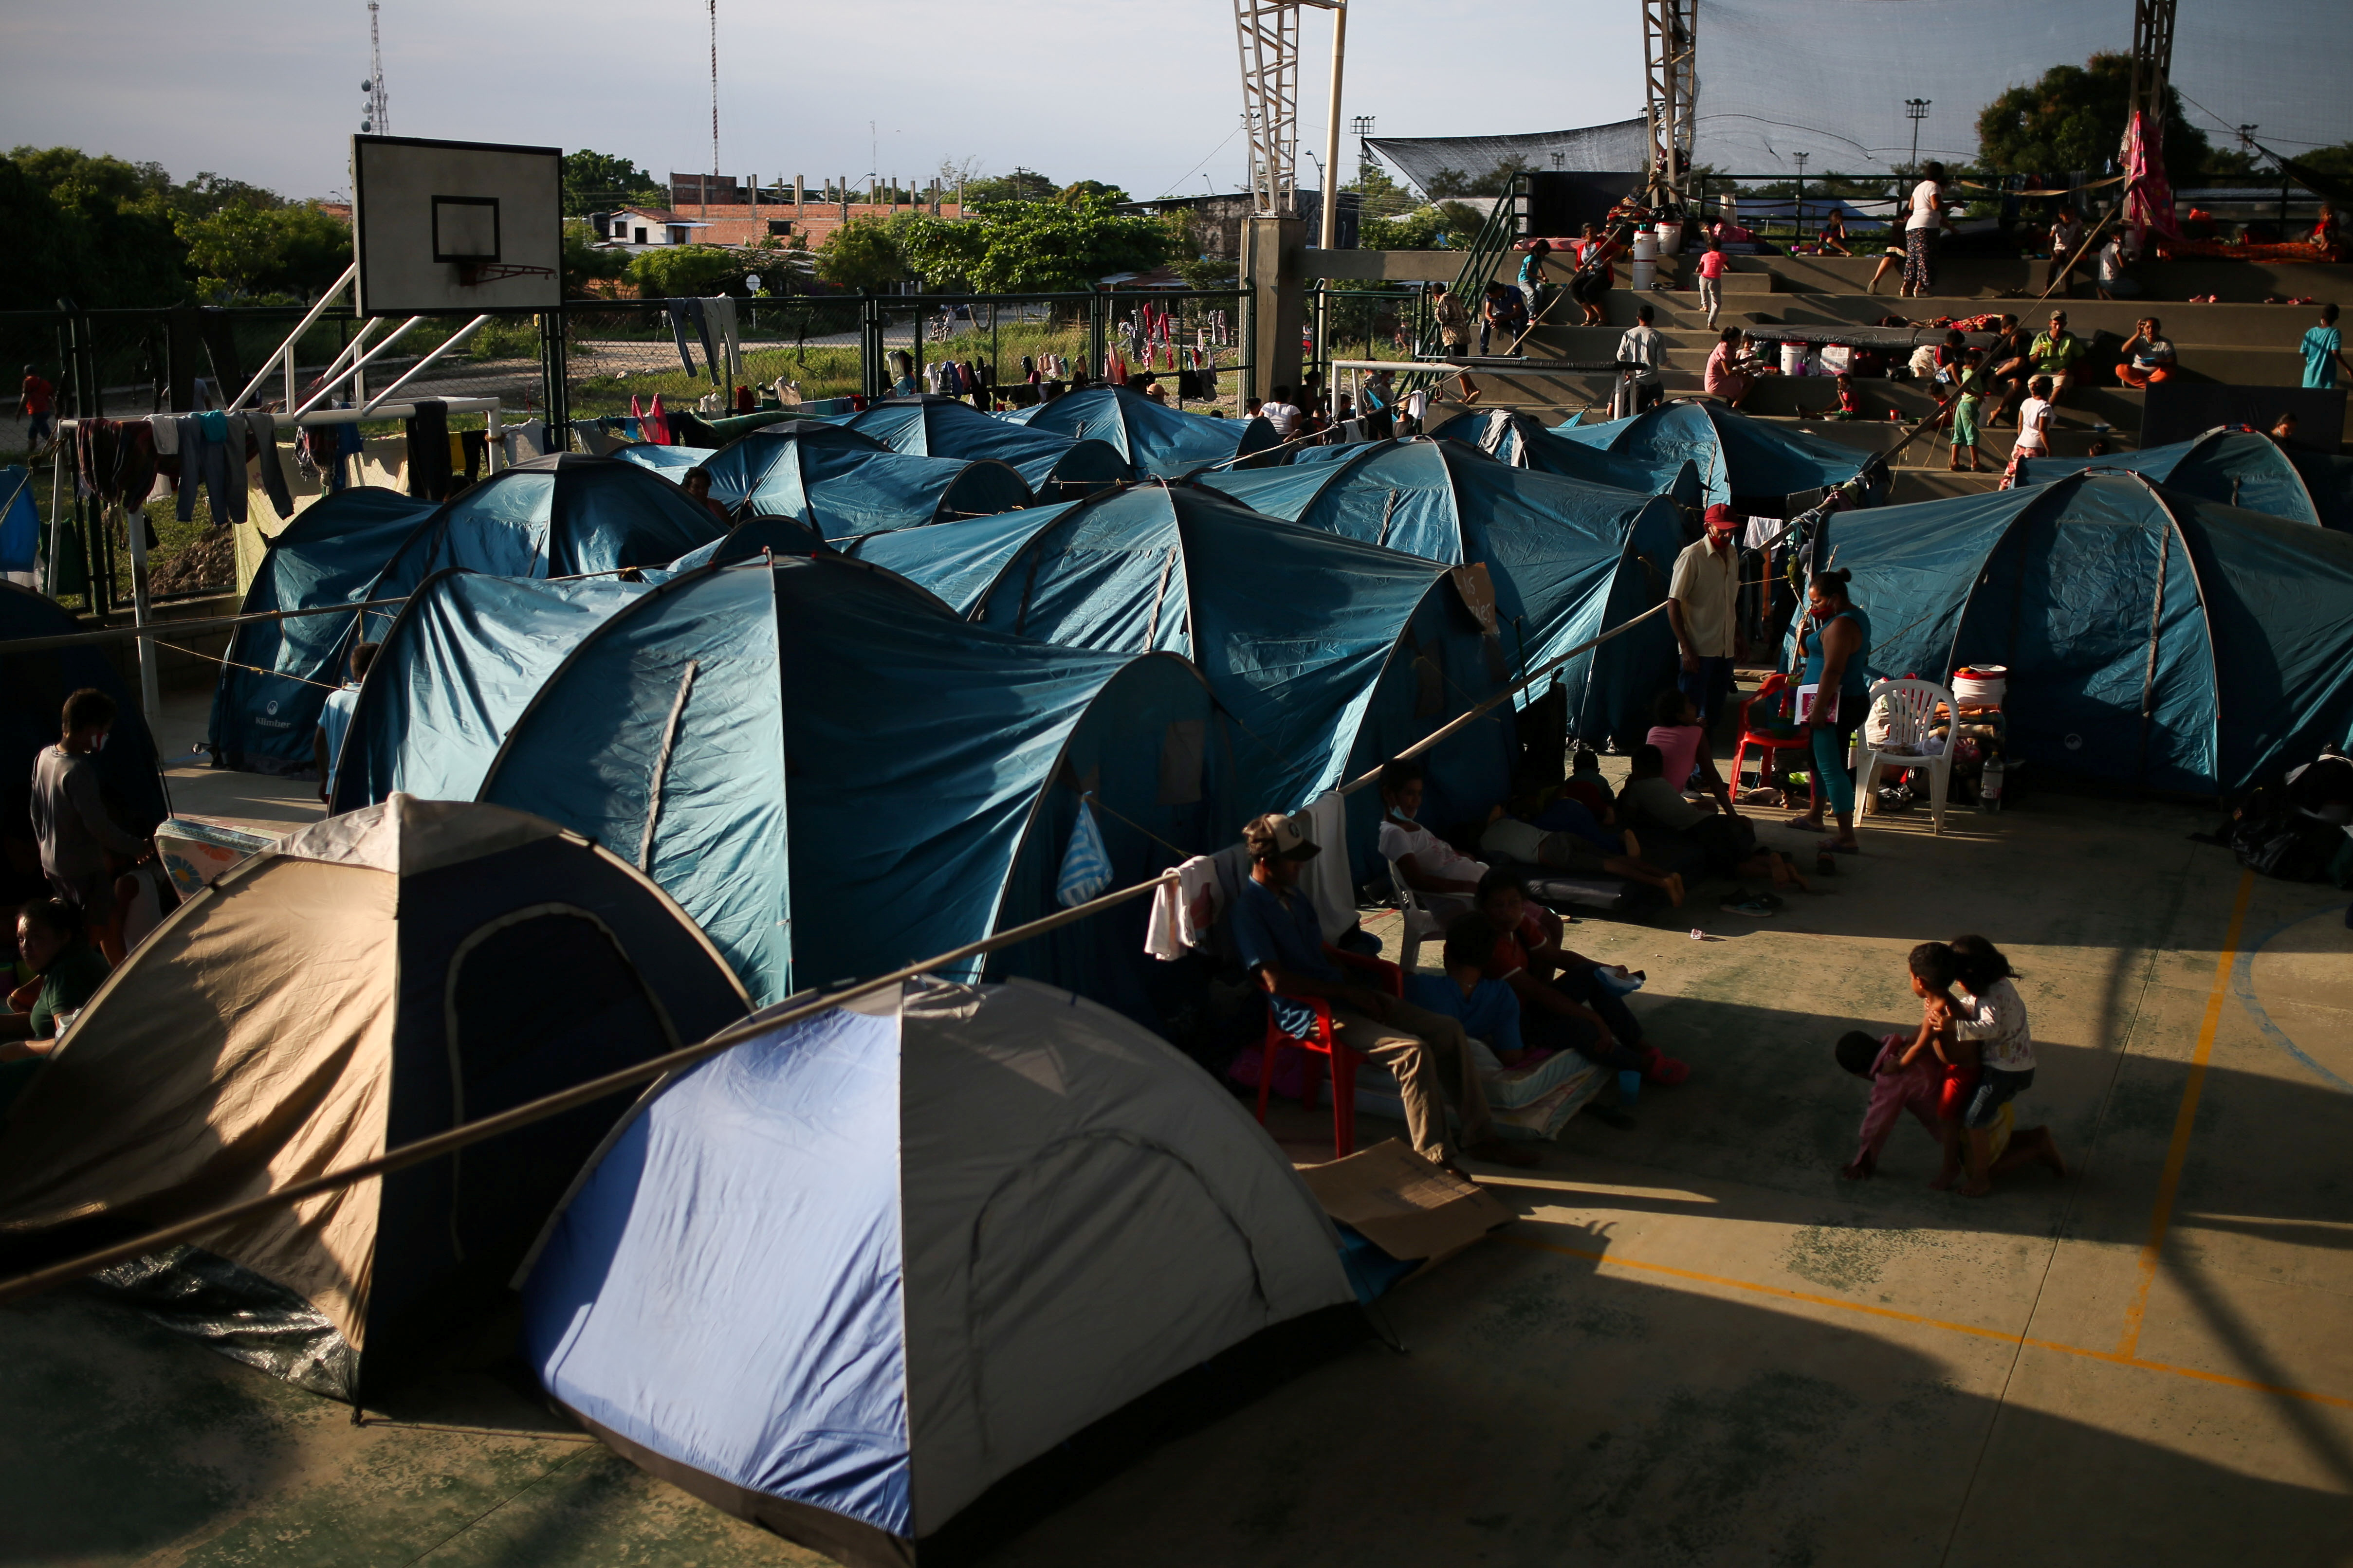 Venezuelan migrants are seen inside a coliseum where a temporary camp has been set up, after fleeing their country due to military operations, according to the Colombian migration agency, in Arauquita, Colombia March 27, 2021. REUTERS/Luisa Gonzalez